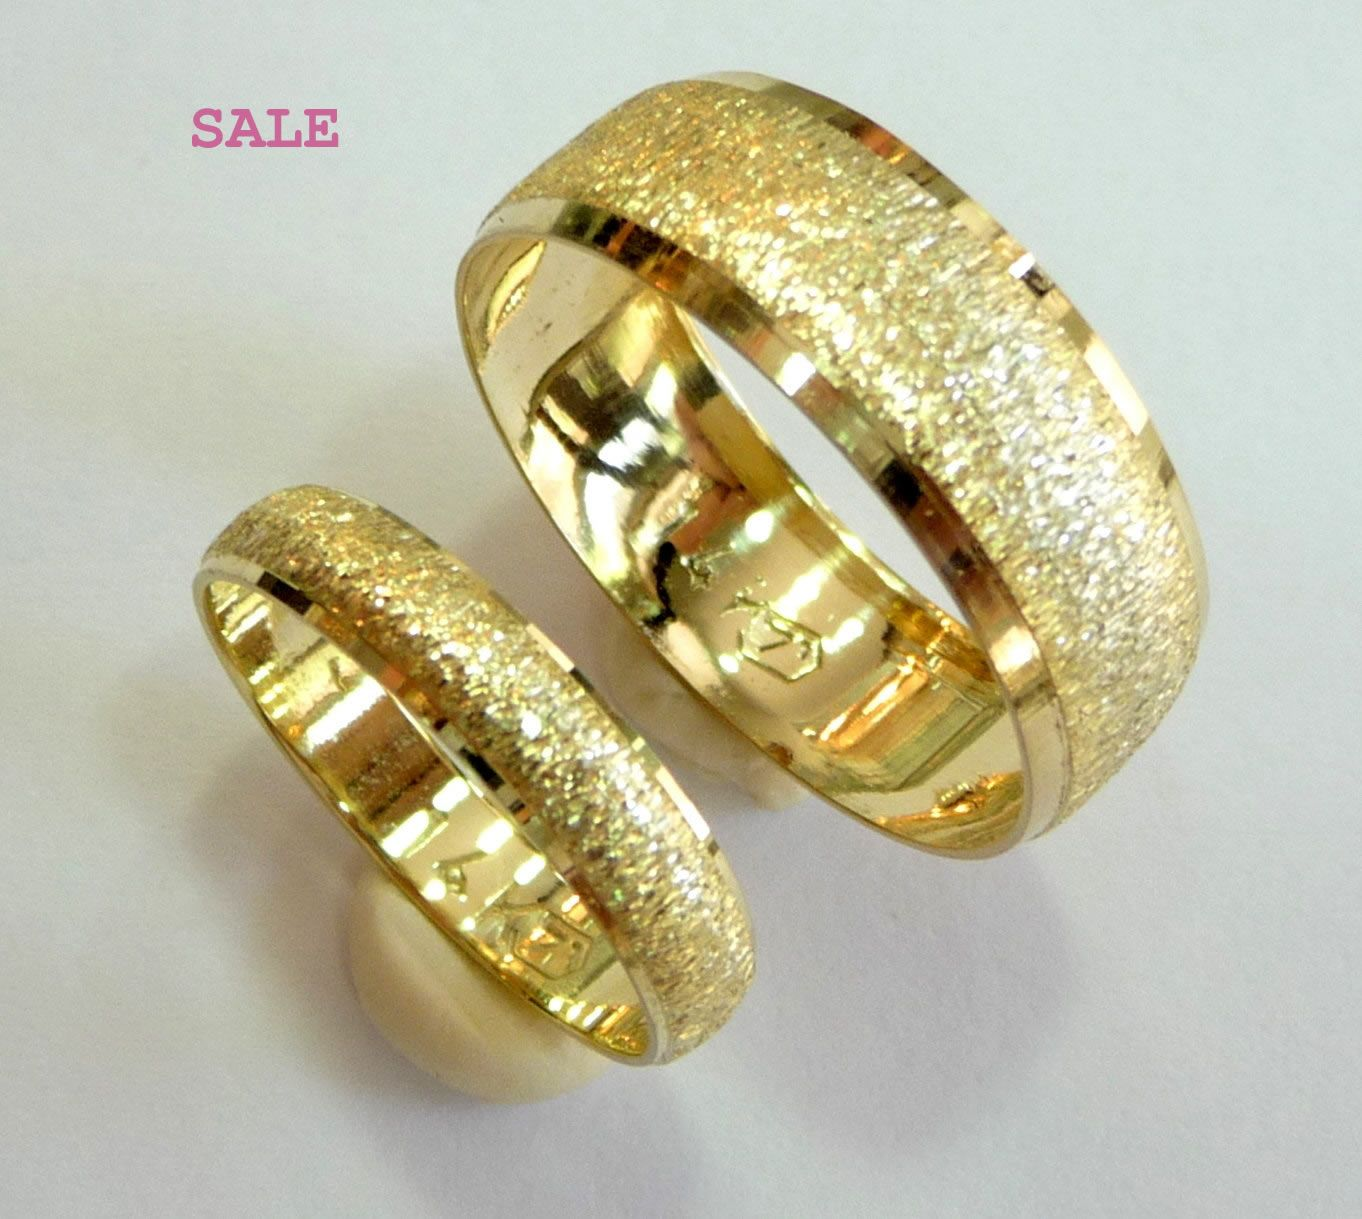 gold wedding bands singapore - Wedding Rings Gold